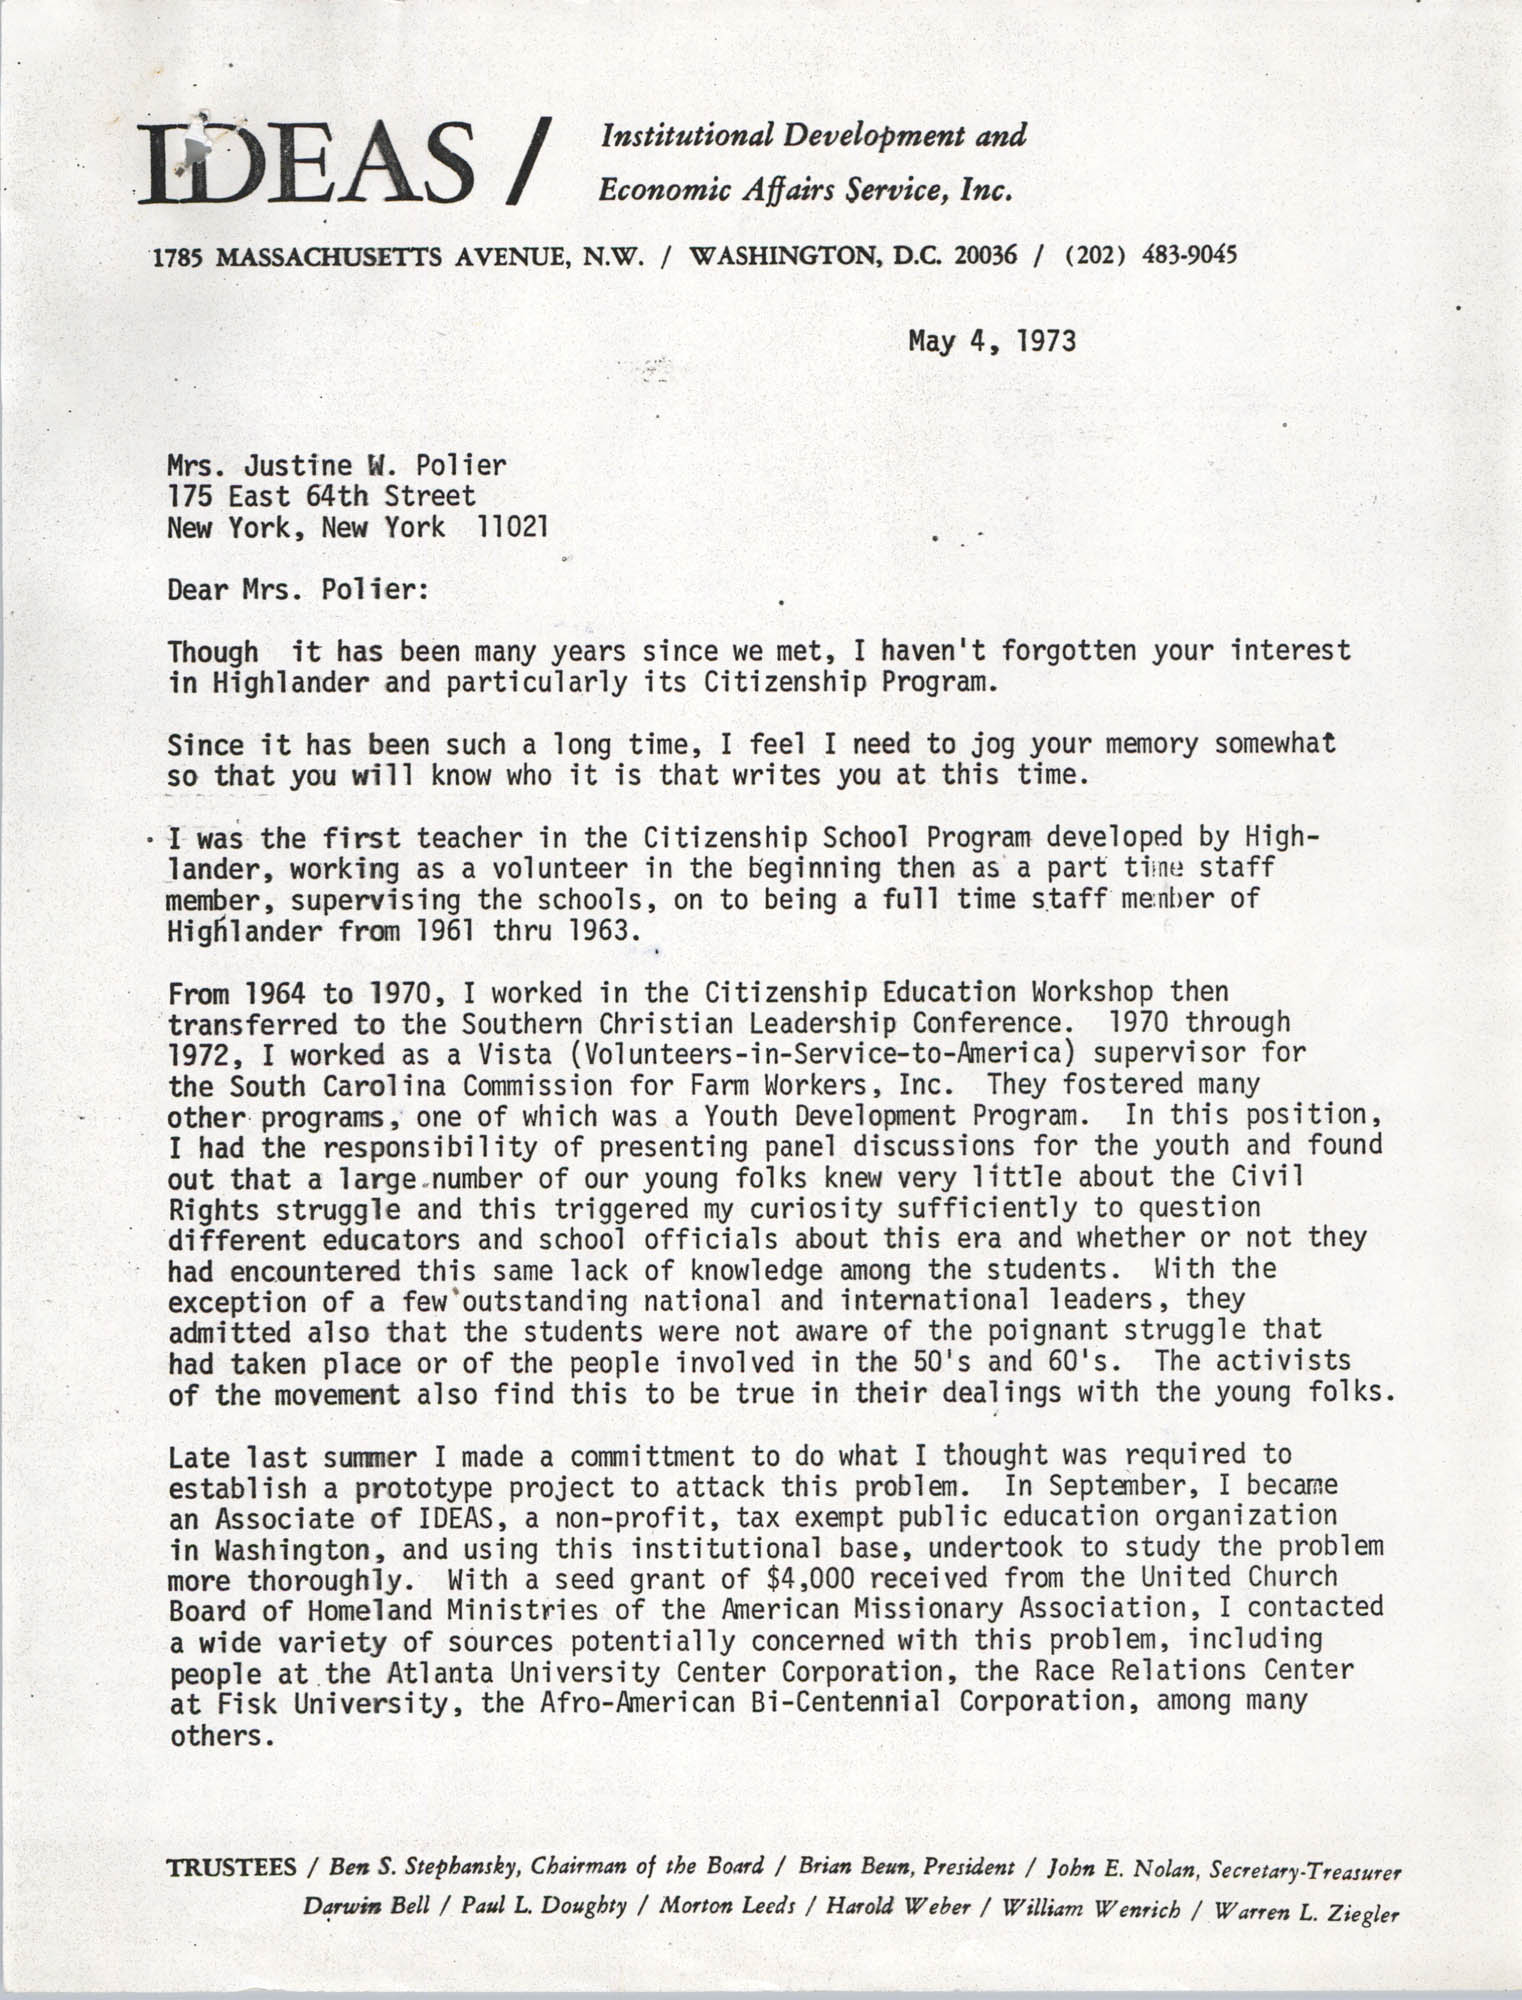 Letter from Bernice Robinson to Justine W. Polier, May 4, 1973